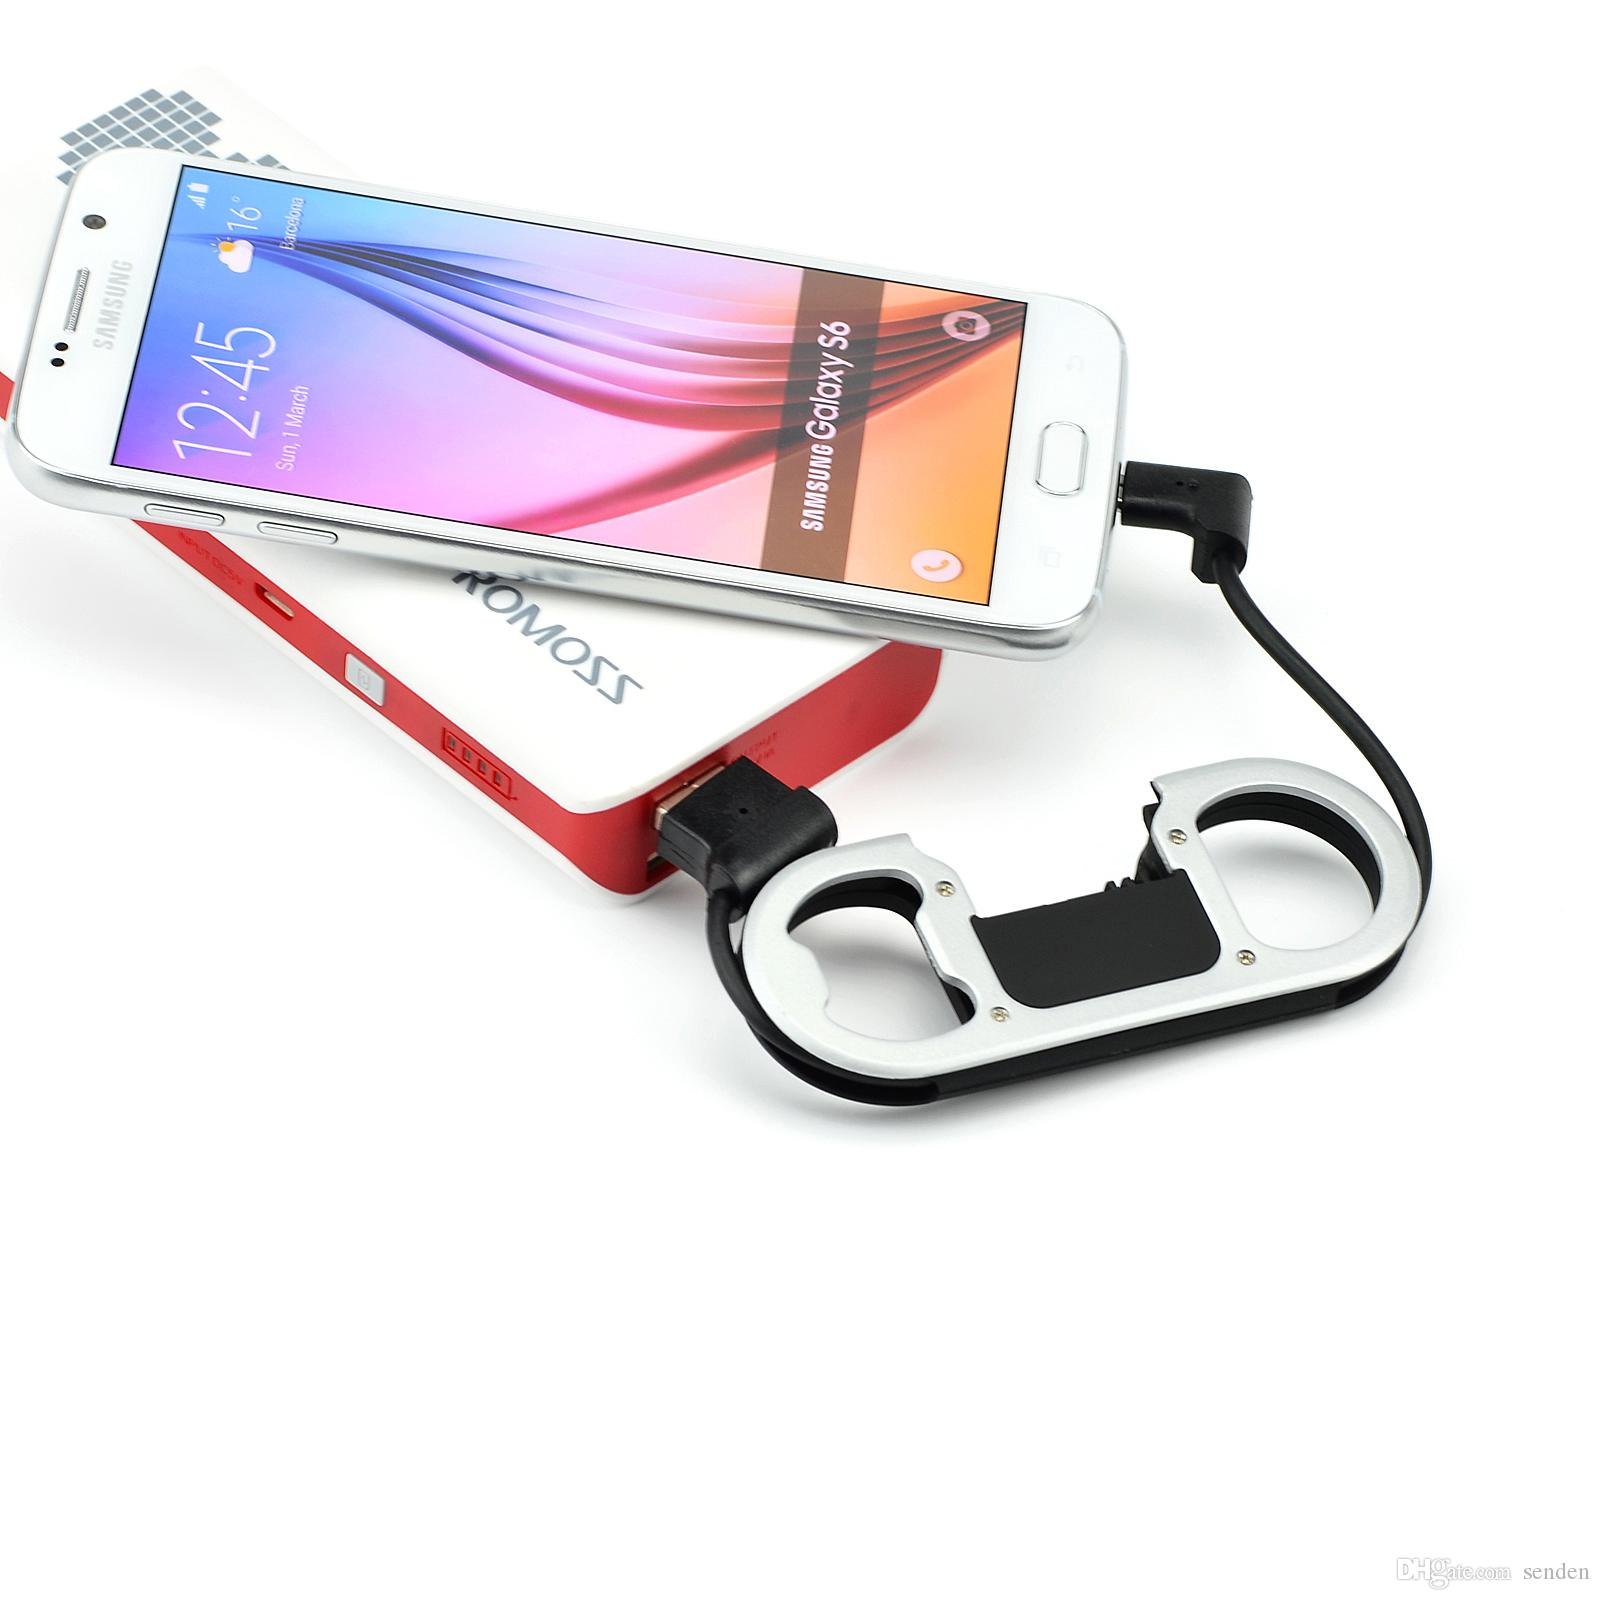 wholesale universal 3 in 1 bottle opener keychain with usb charging data sync cable carabiner. Black Bedroom Furniture Sets. Home Design Ideas